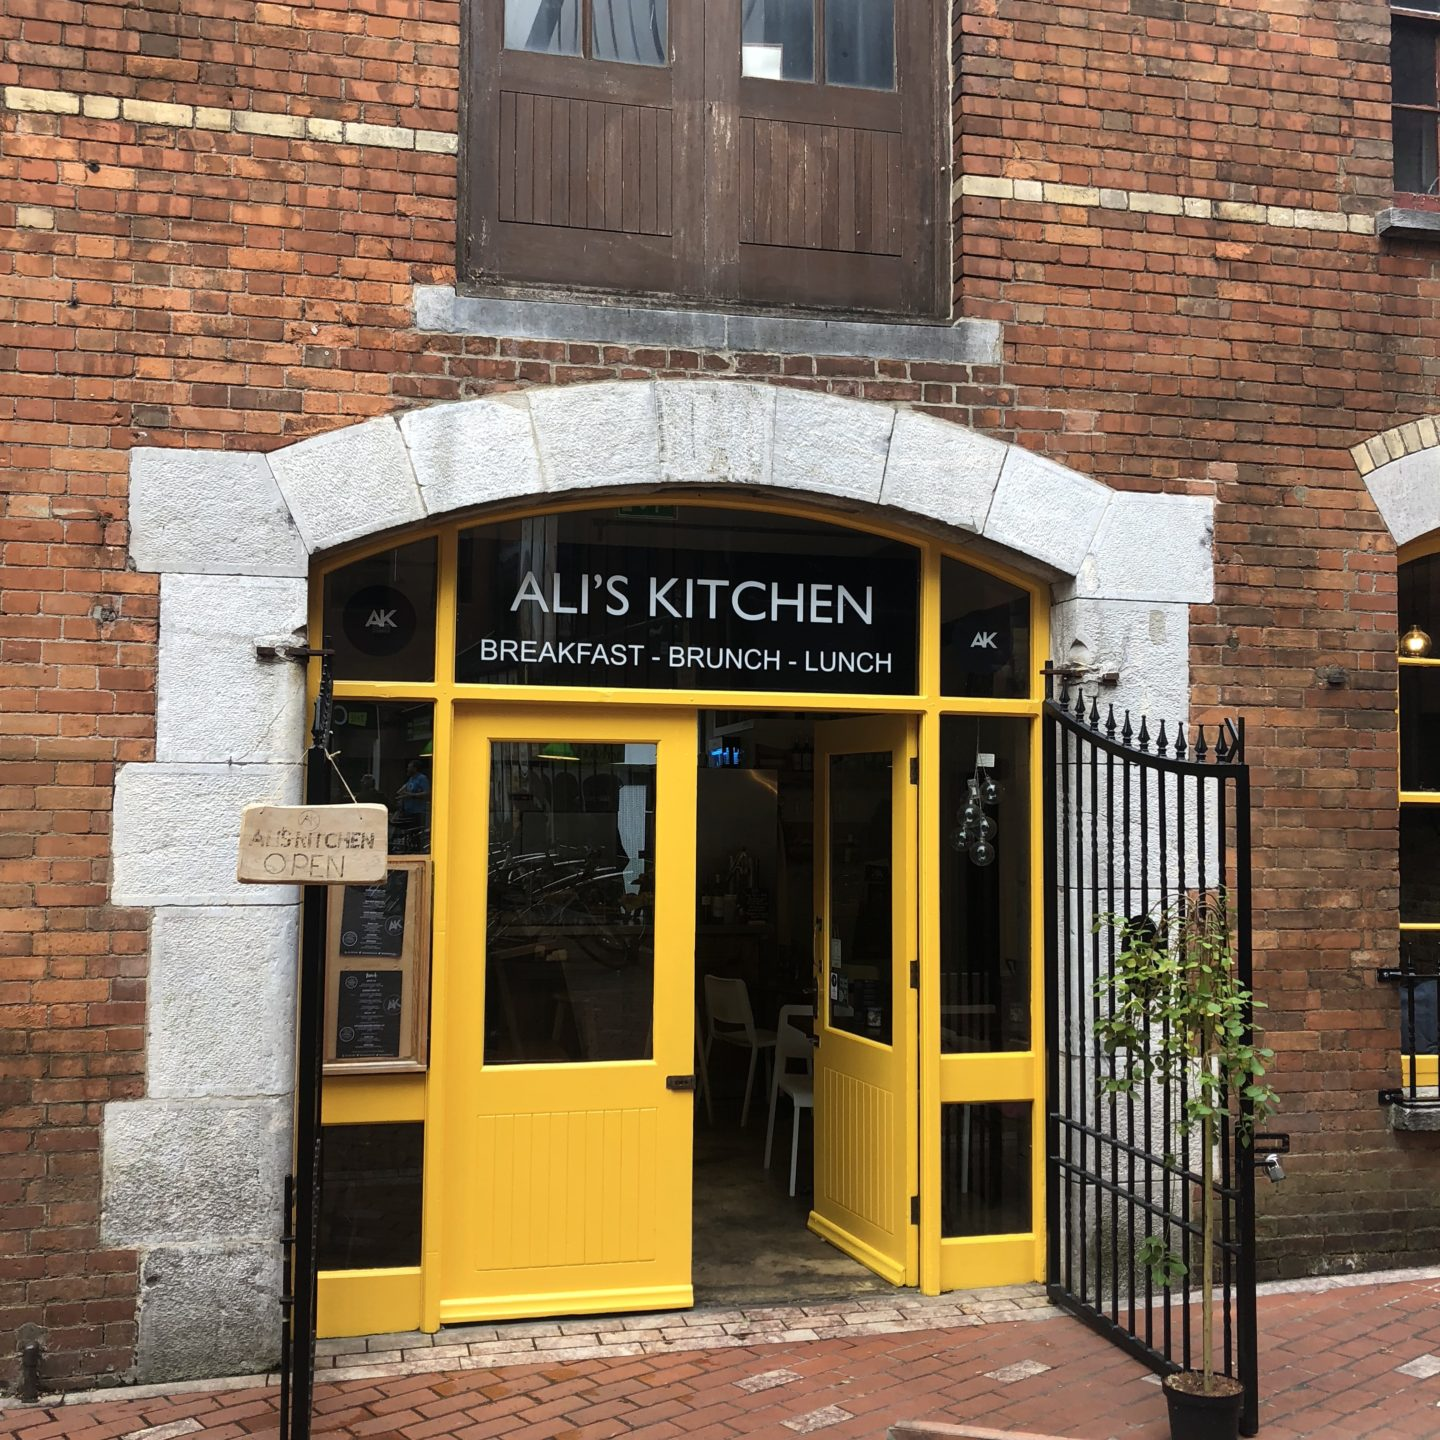 Brunch at Ali's Kitchen – A Delicious Choice In Cork City